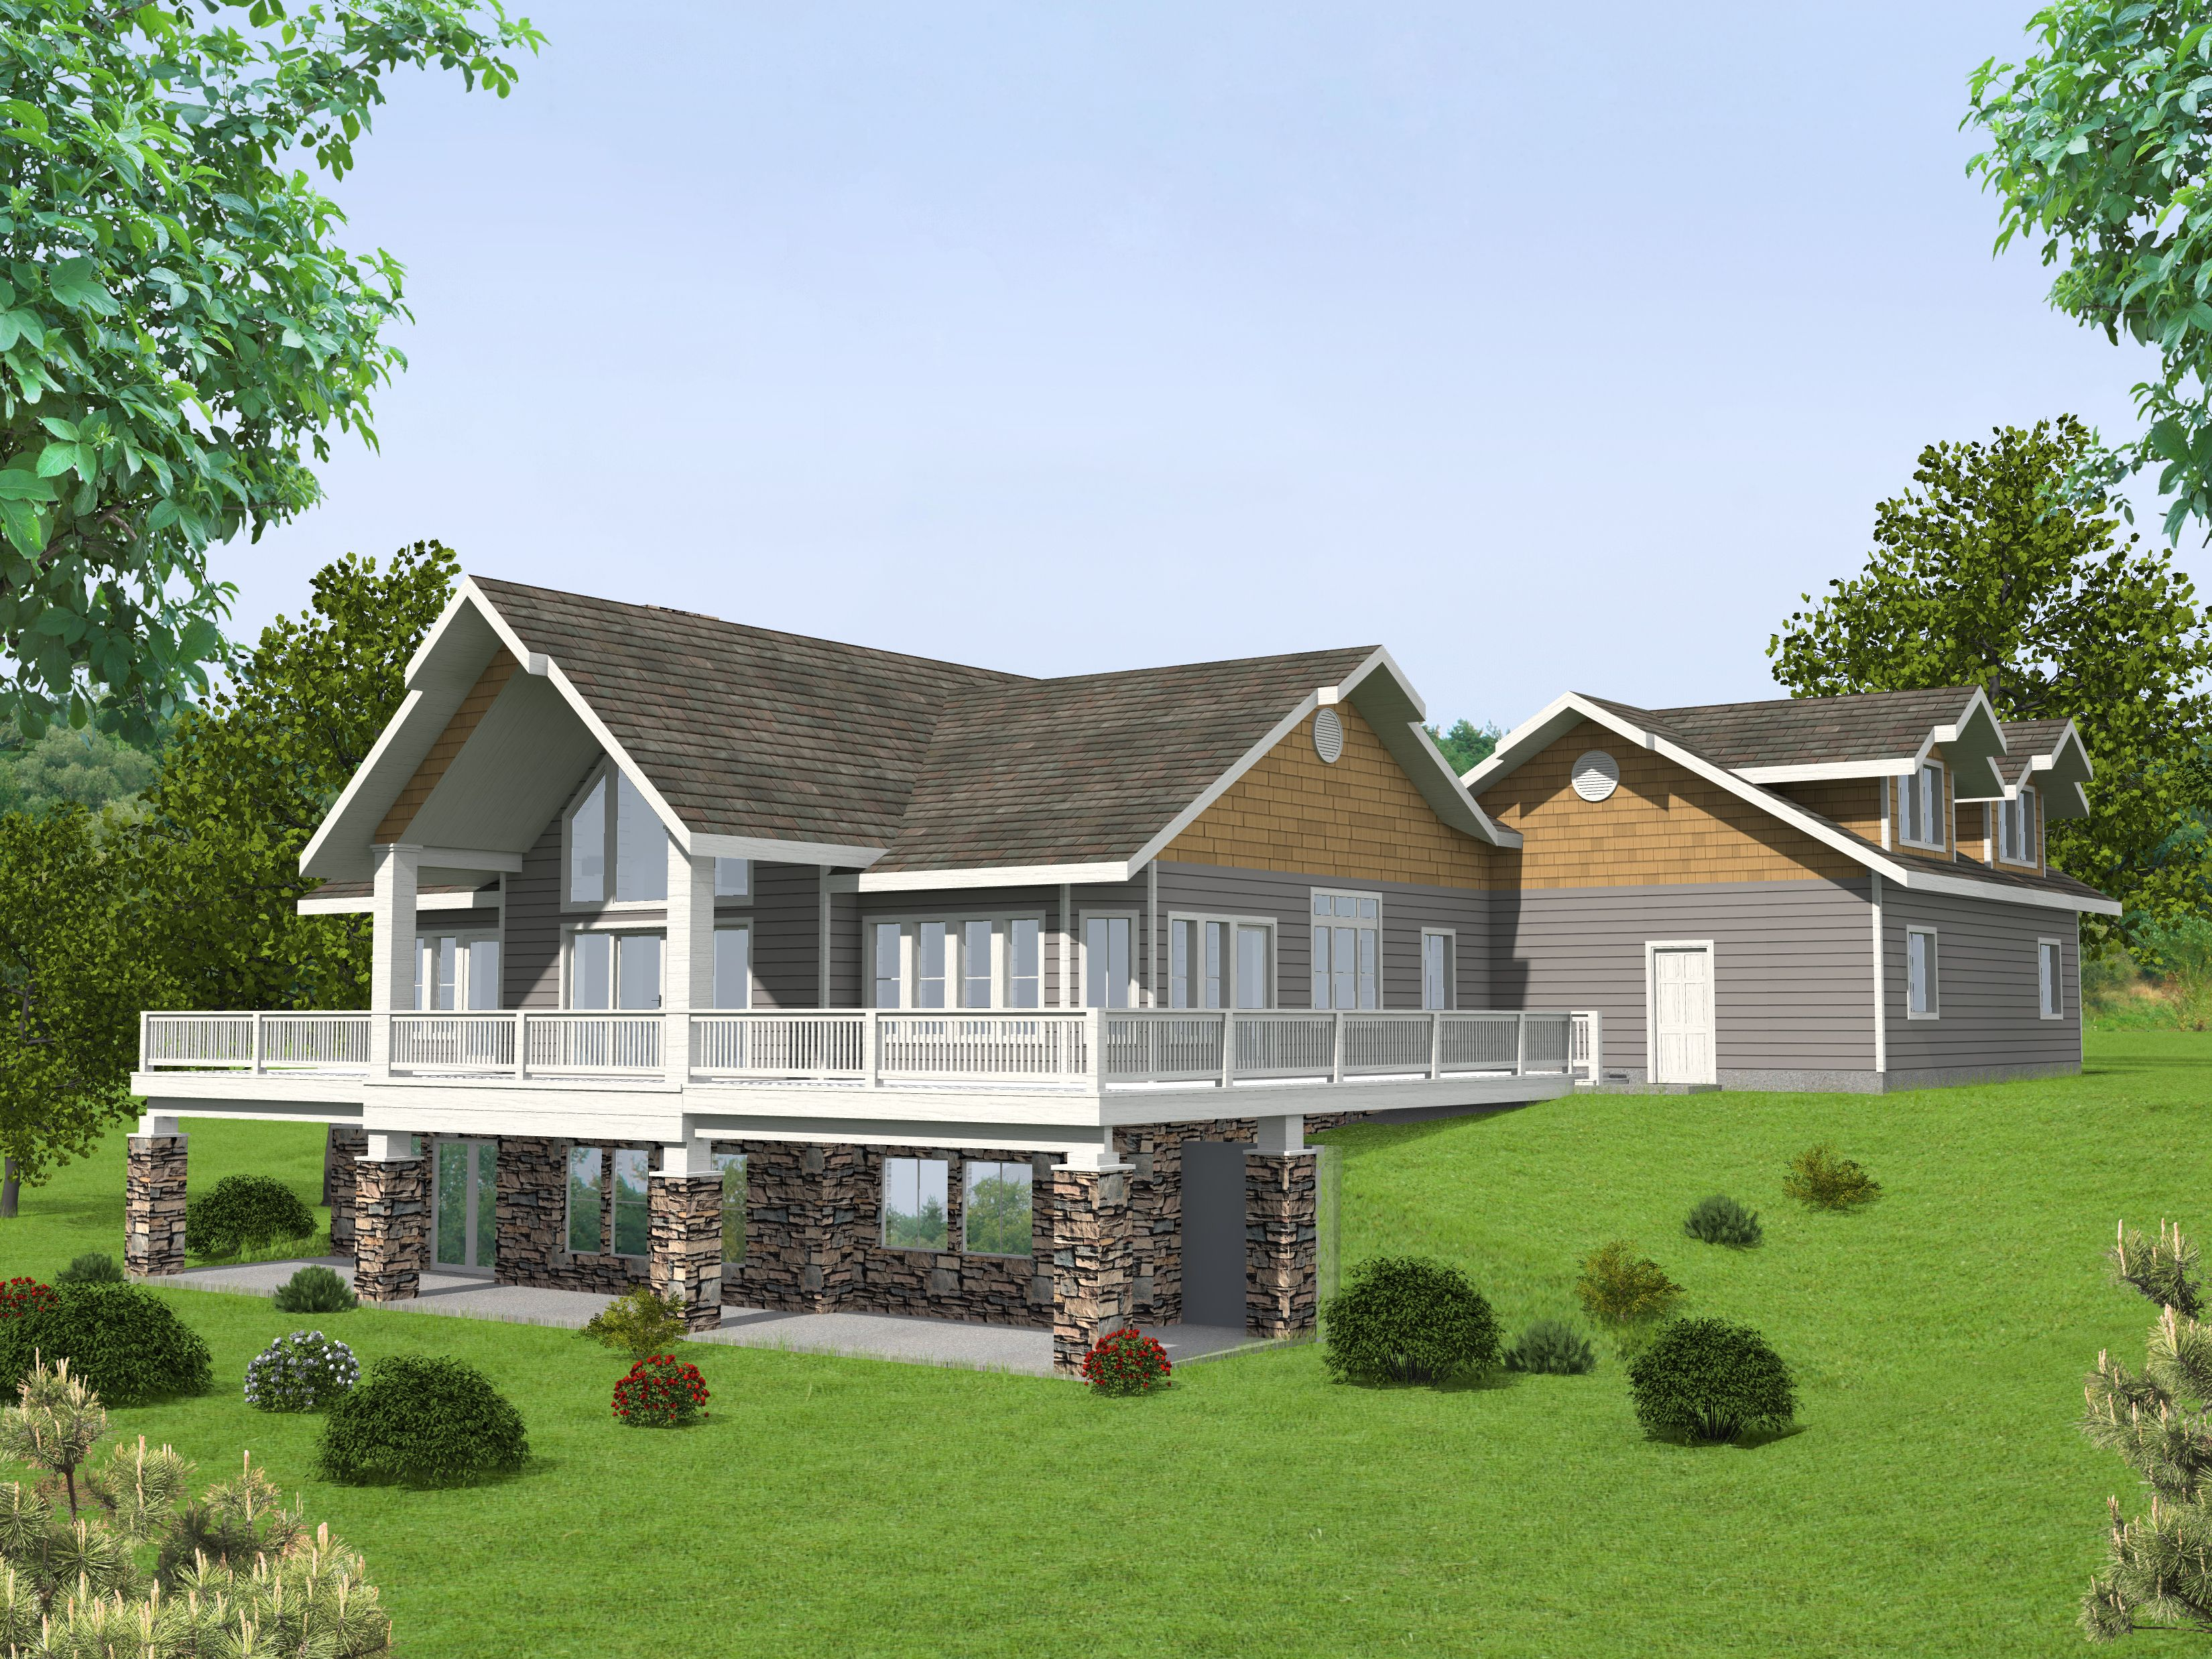 ICF Home Plan #2172 Toll Free: (877) 238-7056 | House junk ... Icf Small Home Plans on small home home plans, small log home plans, small straw bale home plans, small sip home plans, small wood home plans, small timber frame home plans, small zero energy home plans, small home building plans,